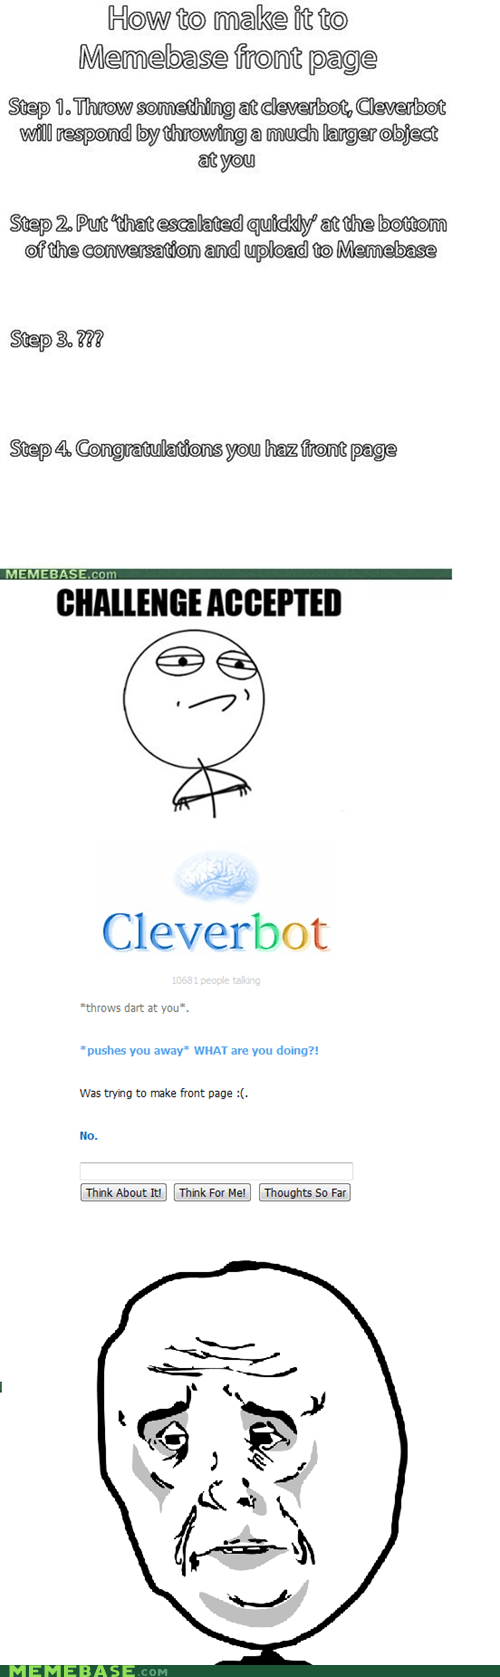 Cleverbot,how to make the front pag,Memes,Okay,that escalated quickly